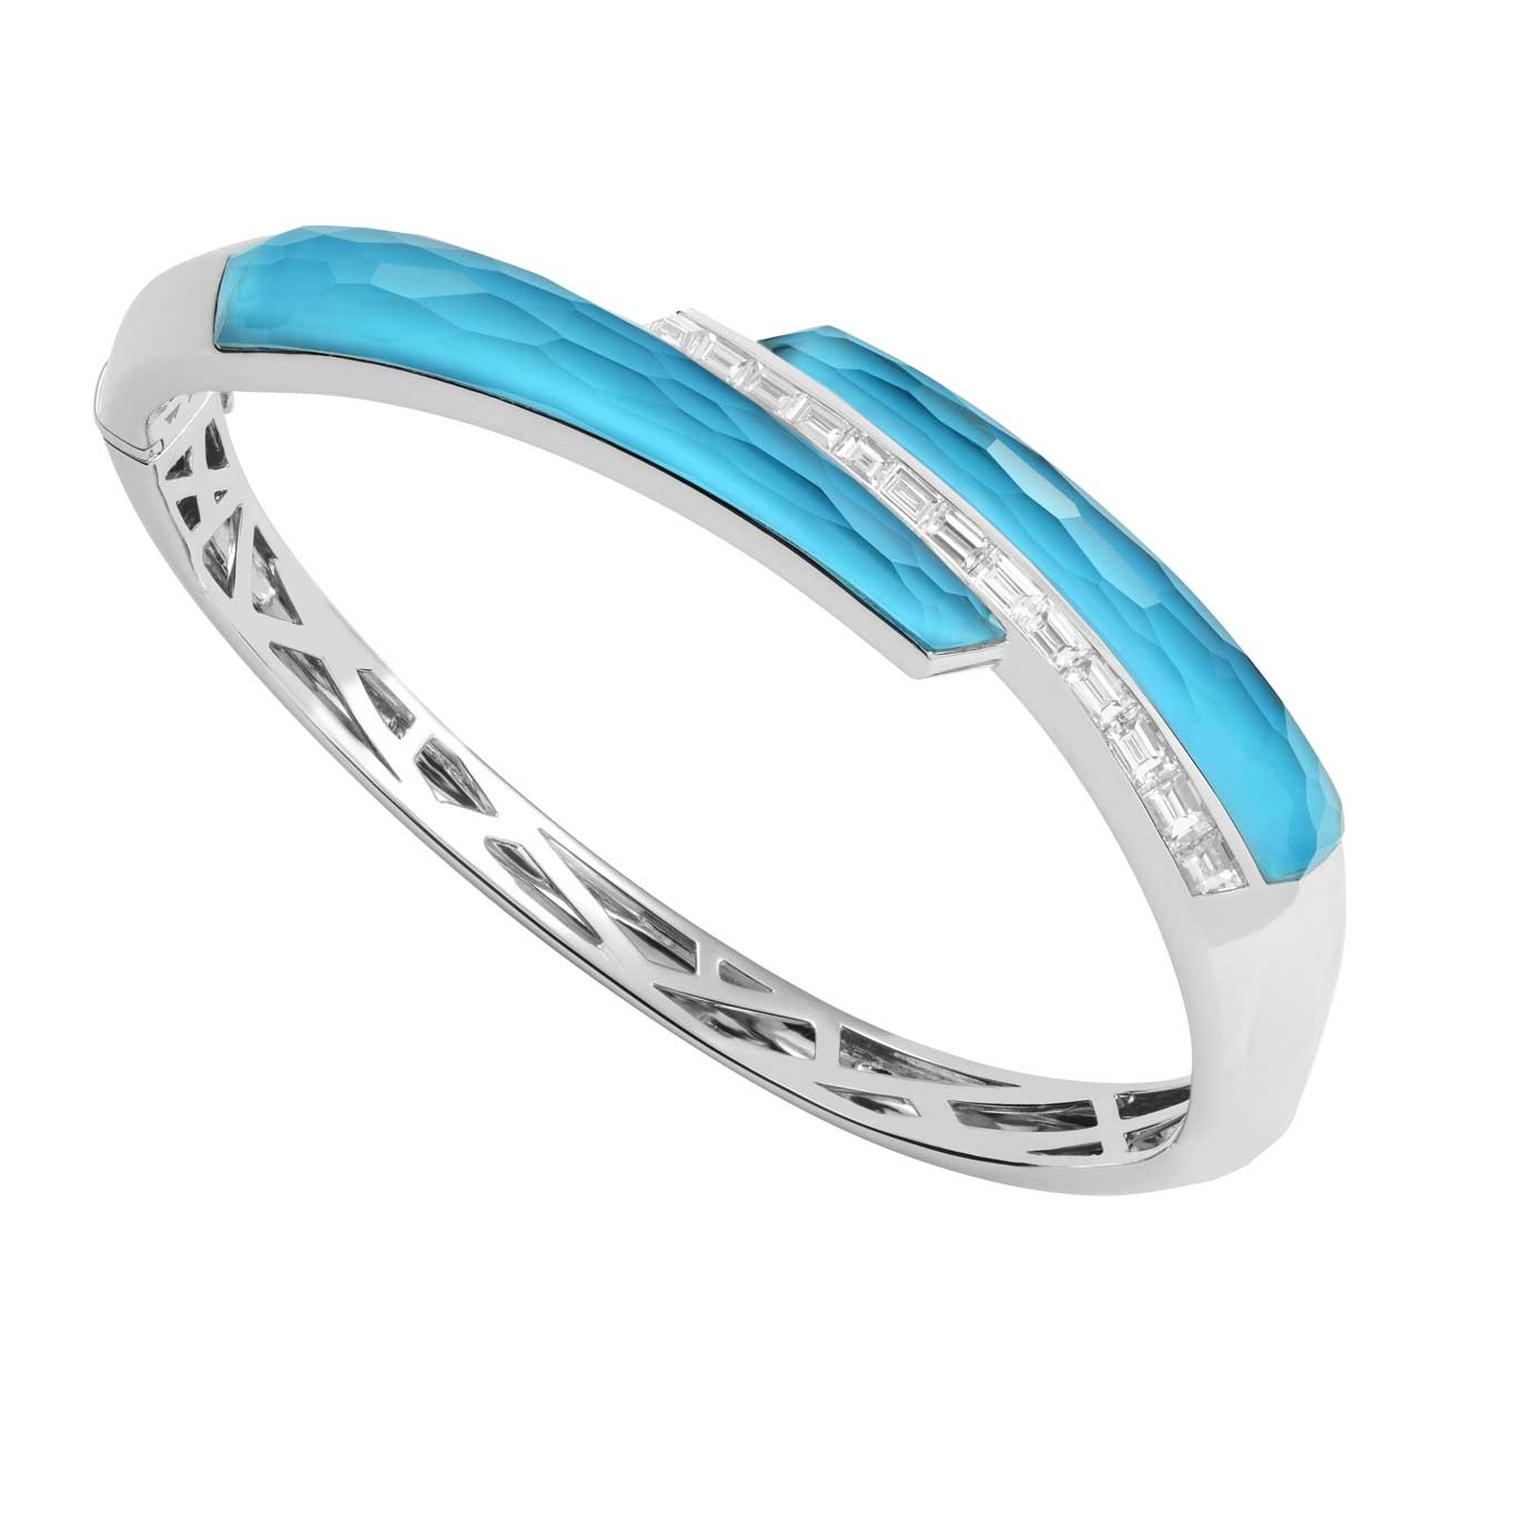 Stephen Webster CH2 Shard turquoise bracelet